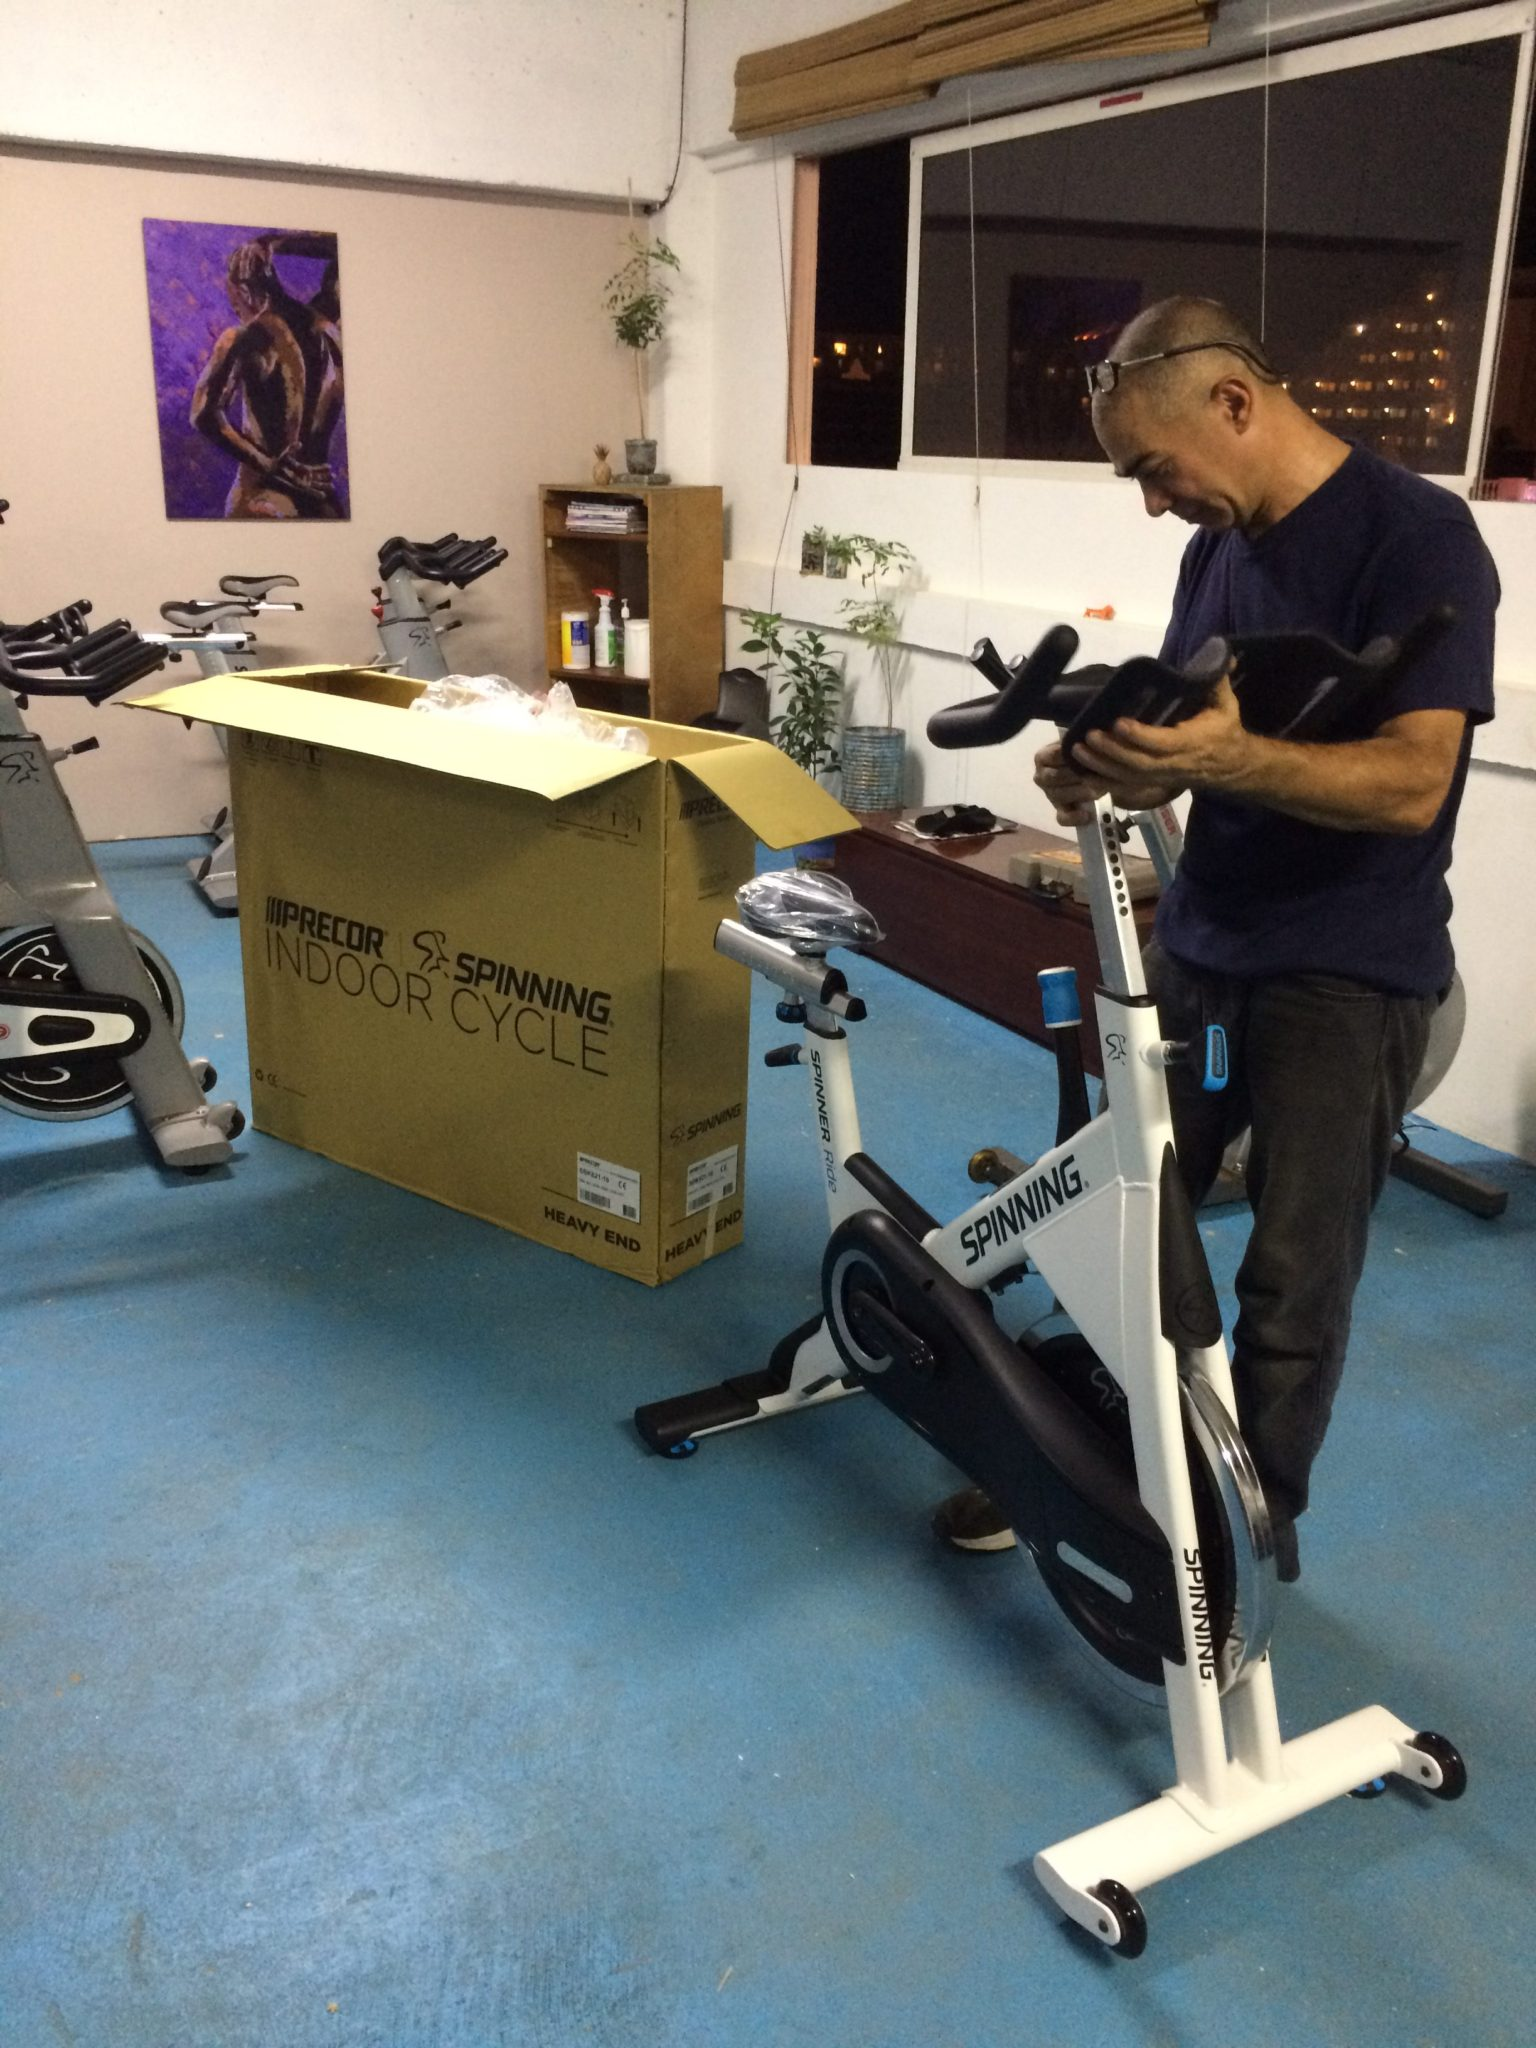 F. L. Y. Studio Fitness Lifestyle Yoga is the first Aruba Study to have to Spinner Precor